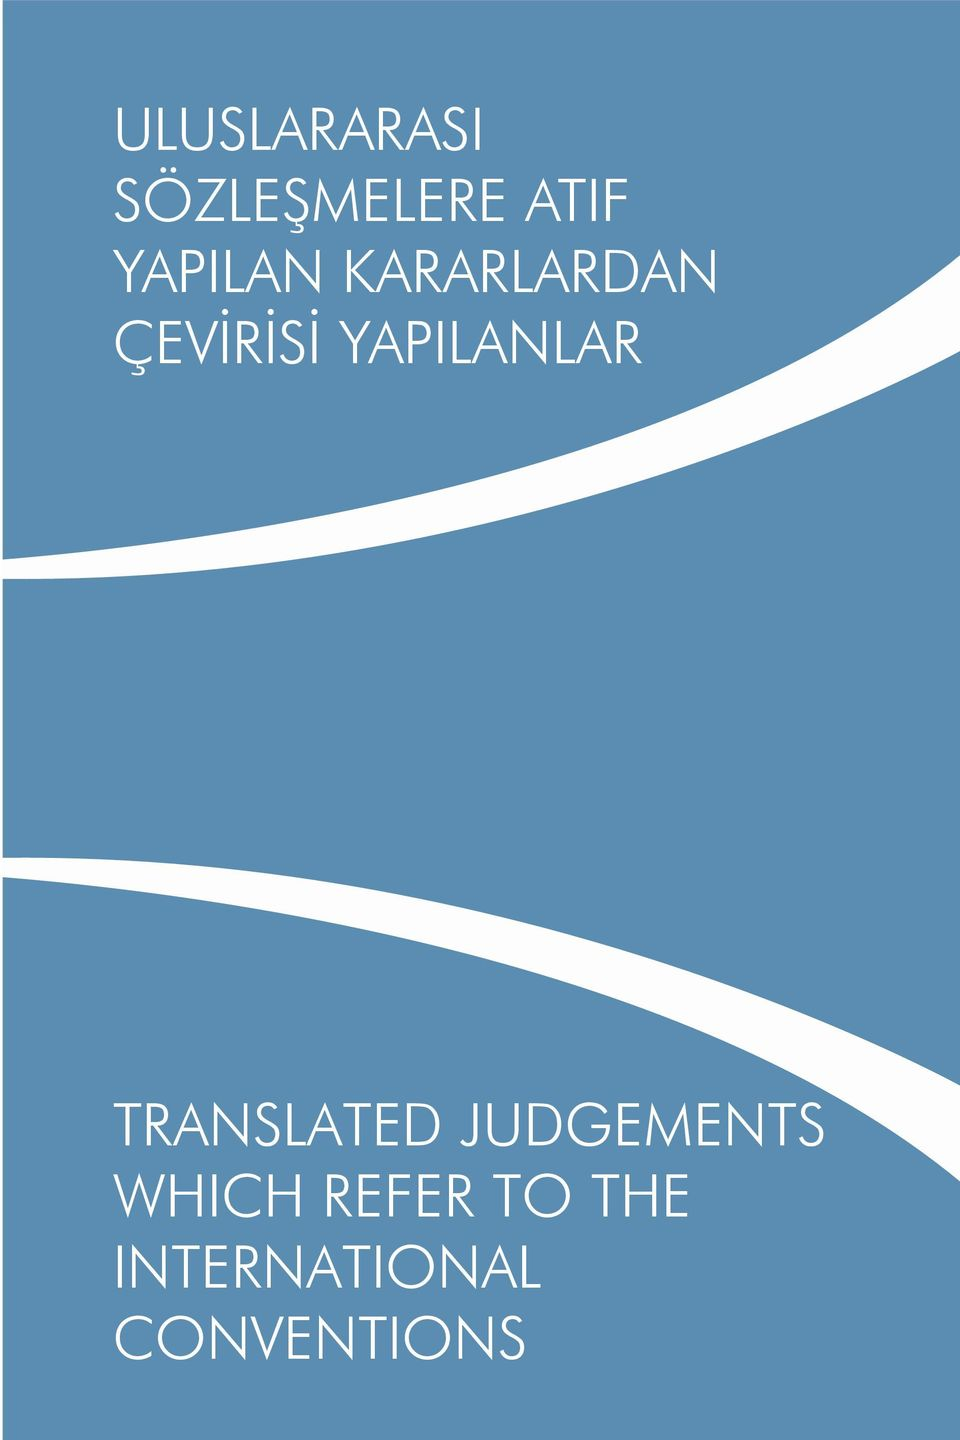 YAPILANLAR TRANSLATED JUDGEMENTS